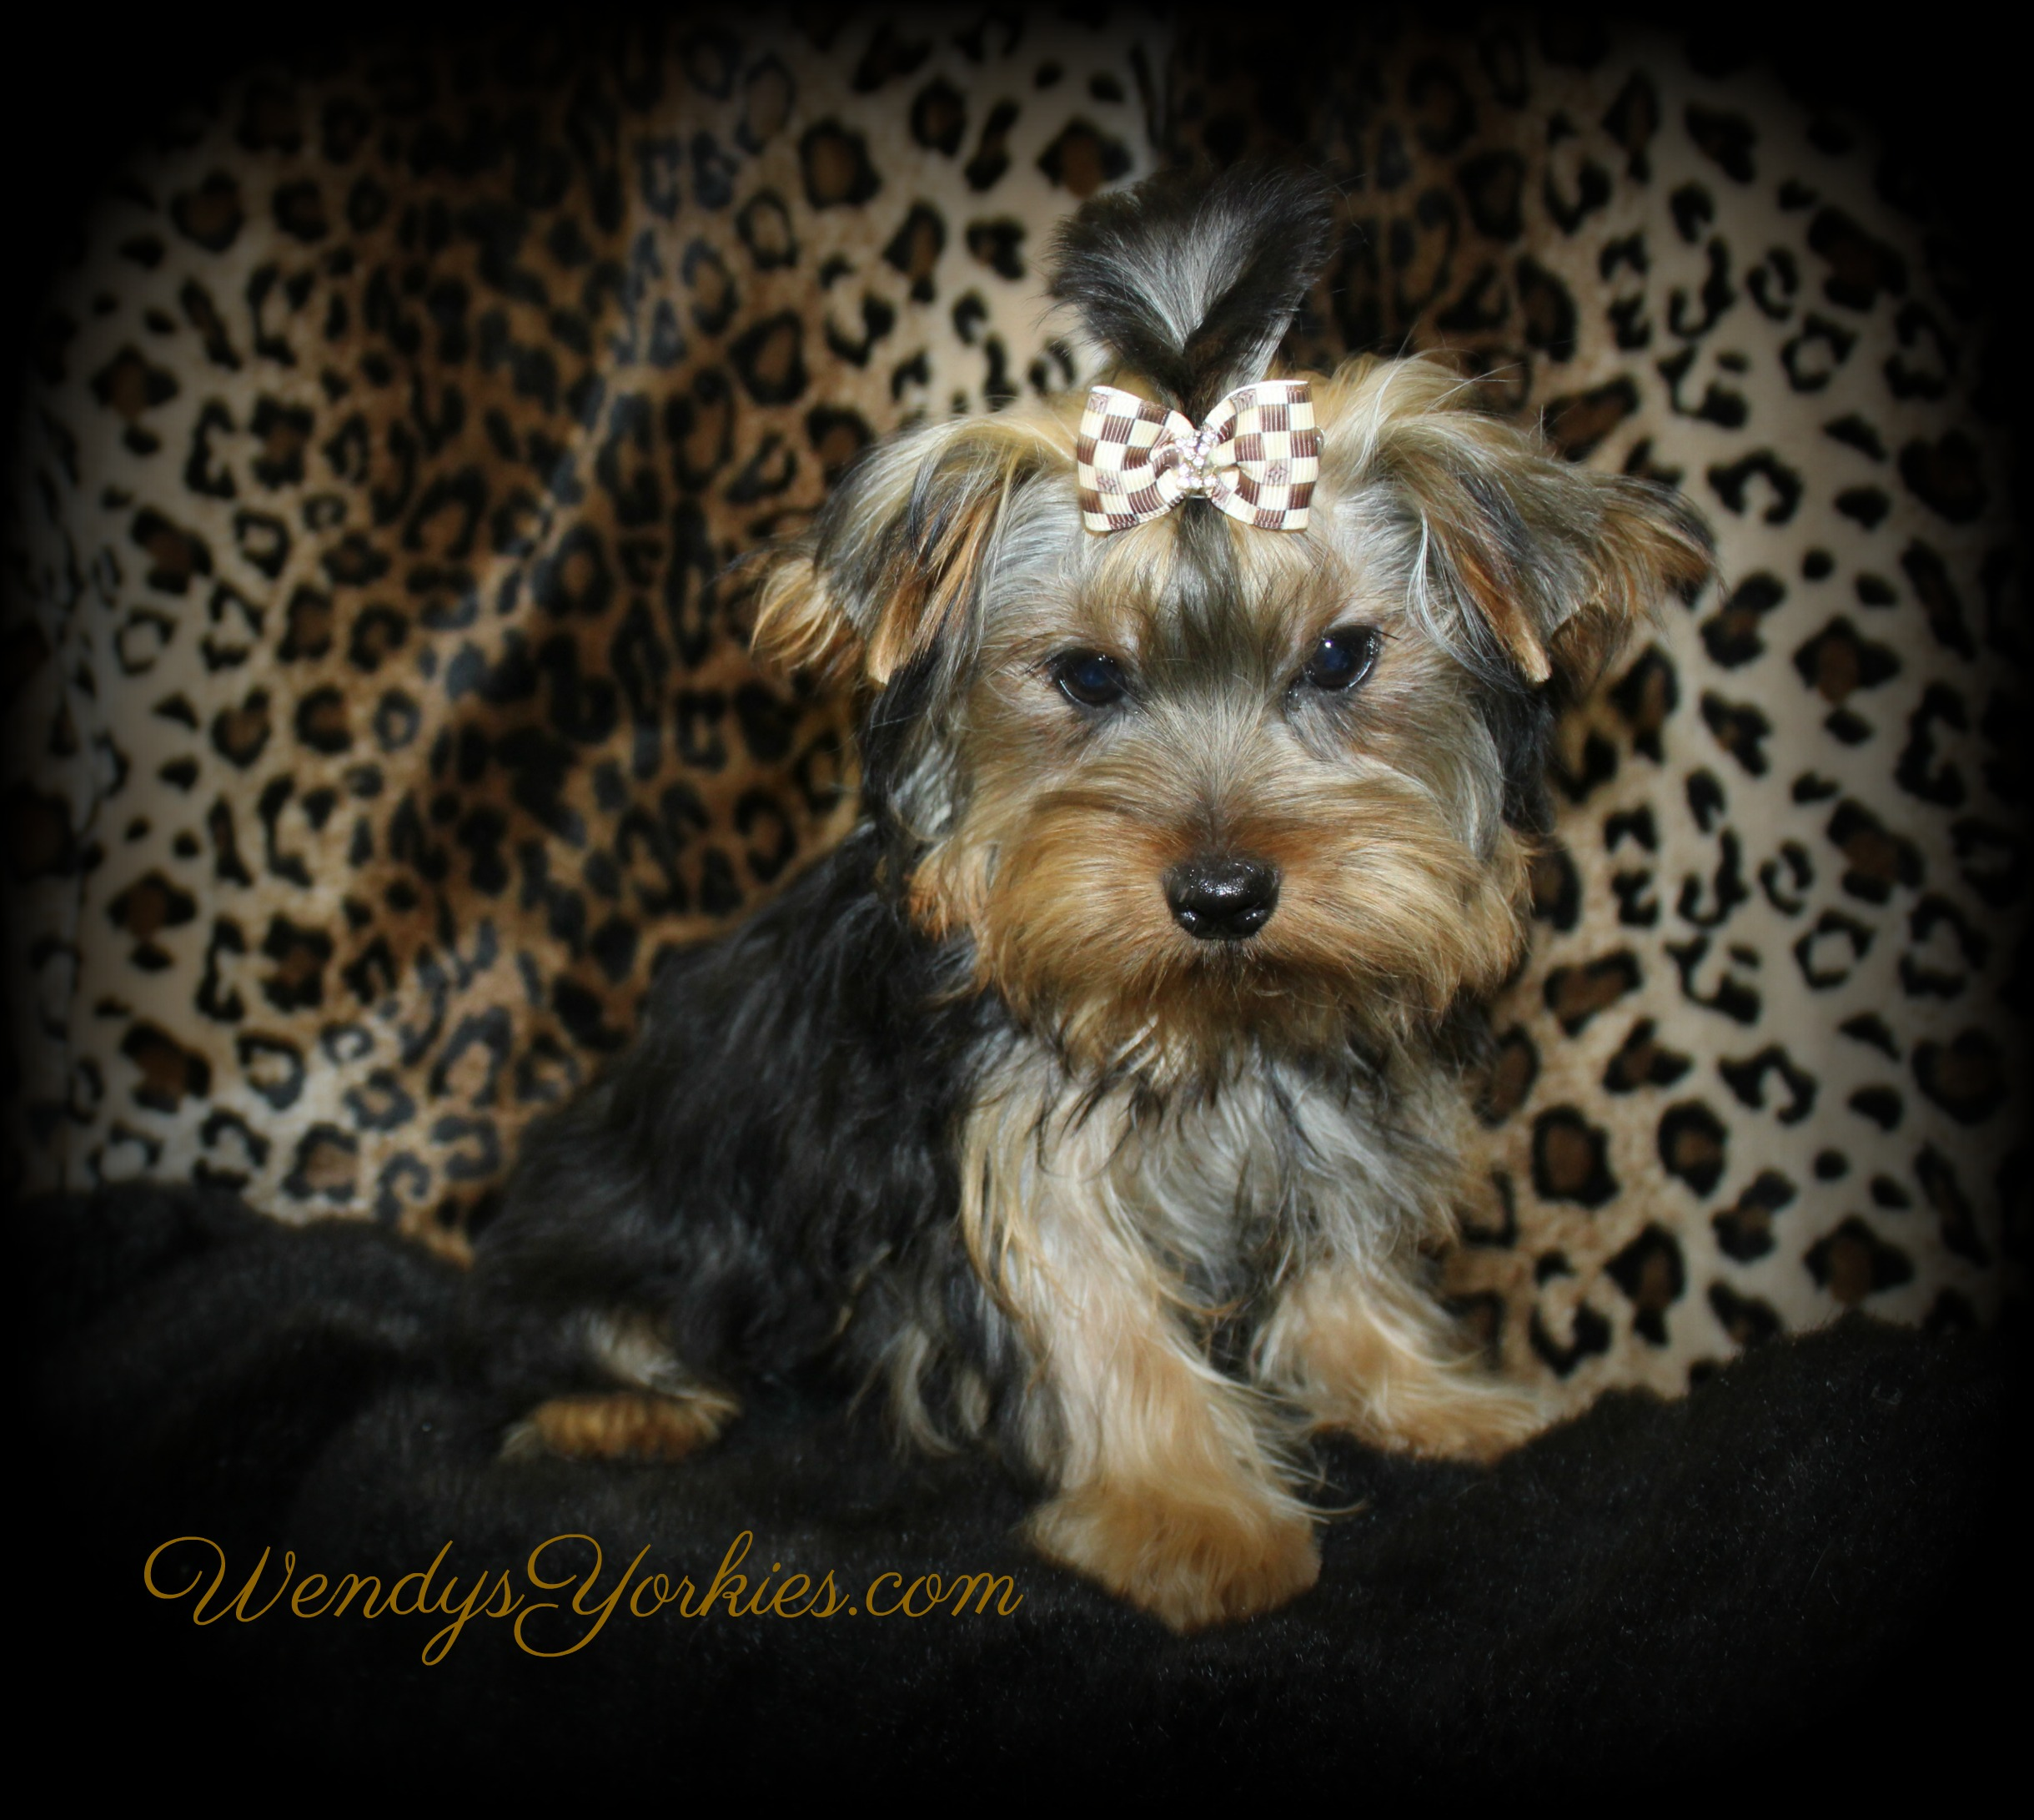 Male Yorkie puppy for sale, Jax, WendysYorkies.com